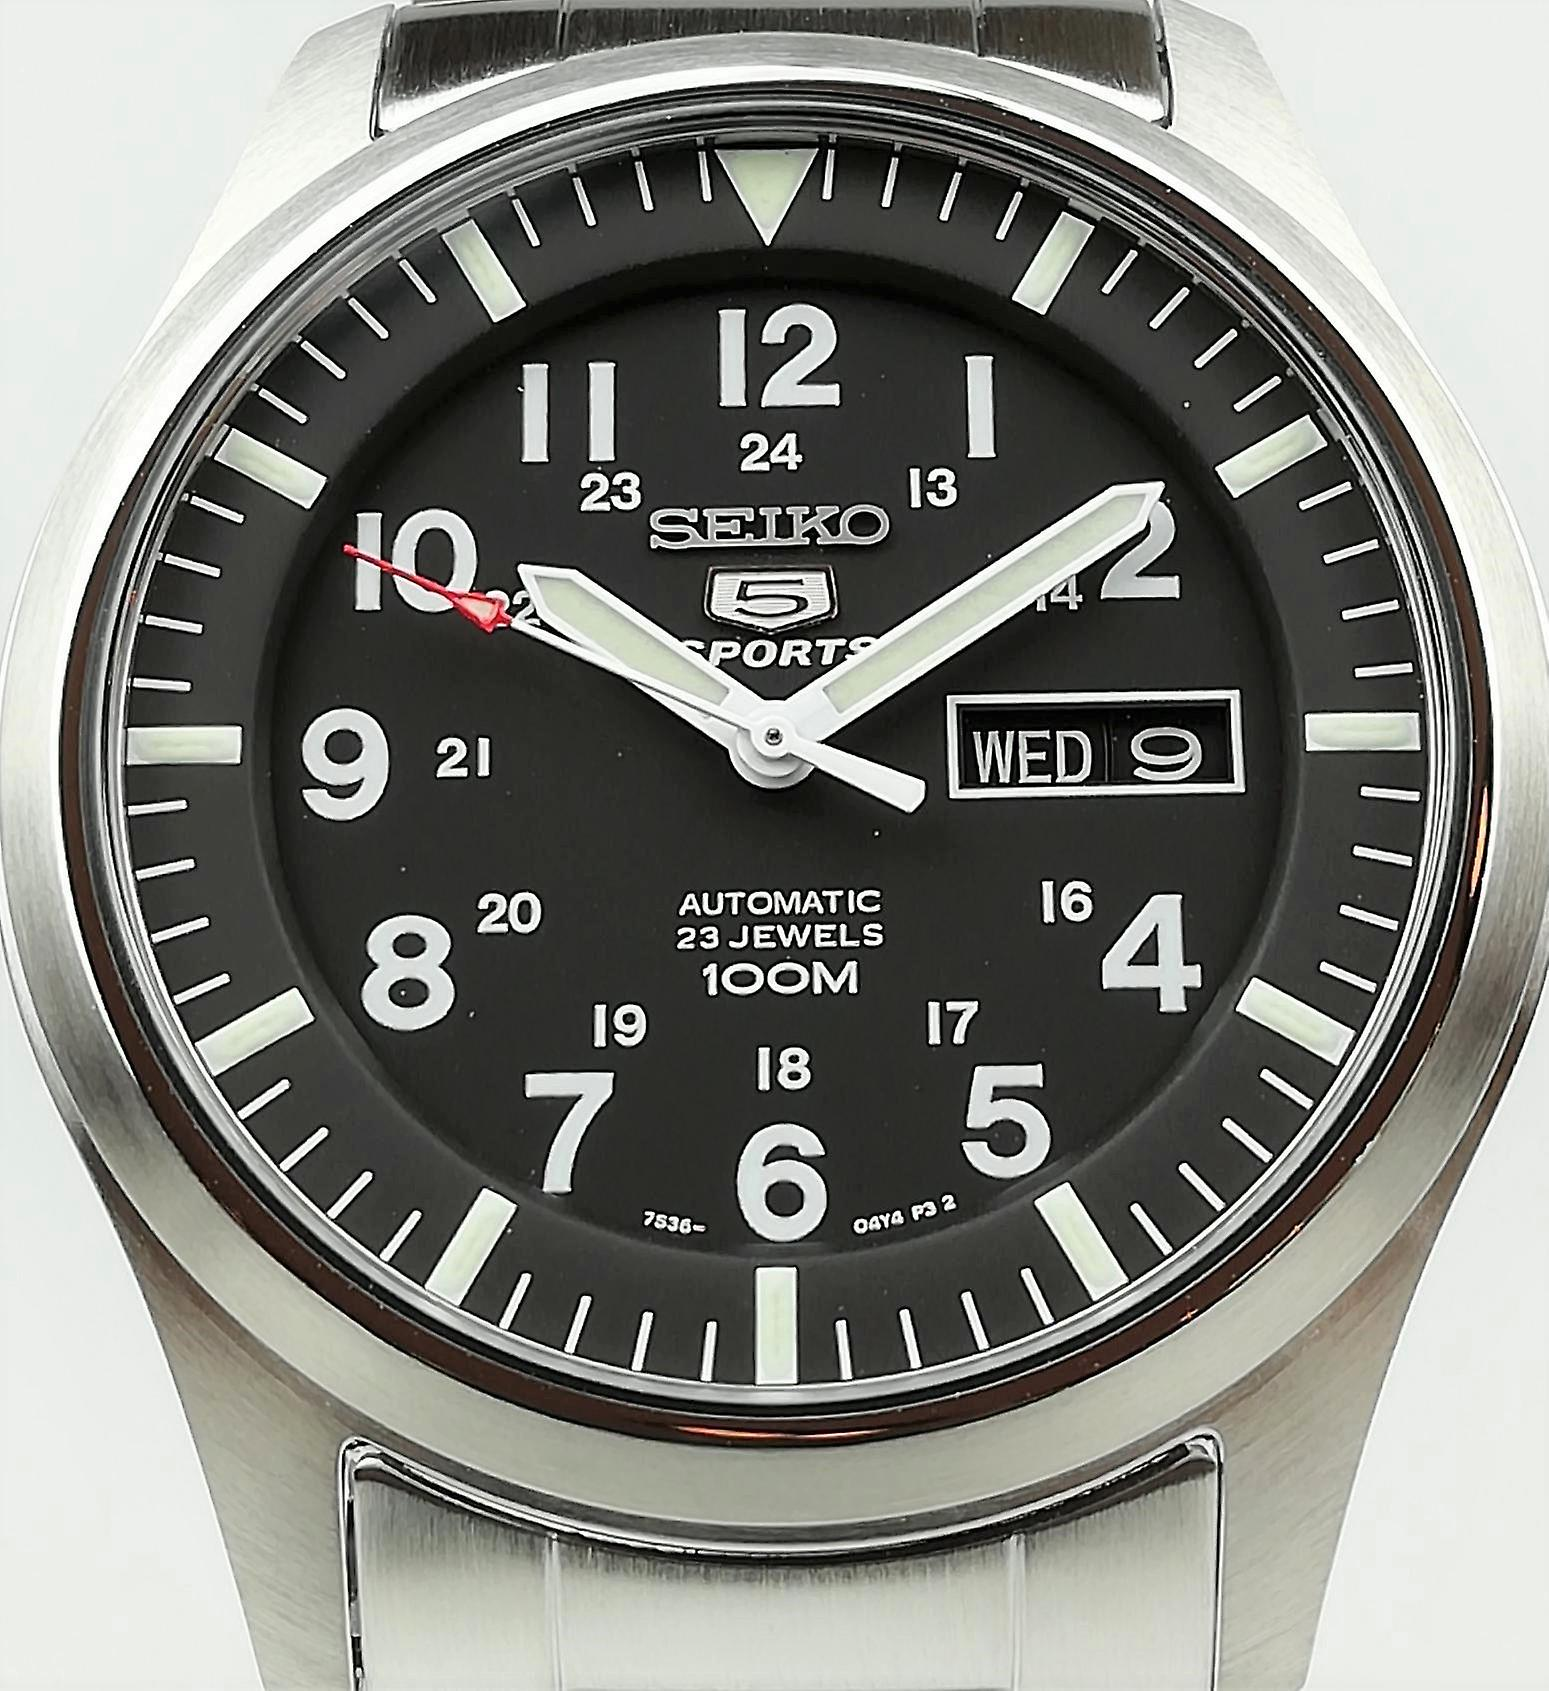 Seiko 5 Sports Automatic Black Dial Stainless Steel Men's Watch SNZG13K1